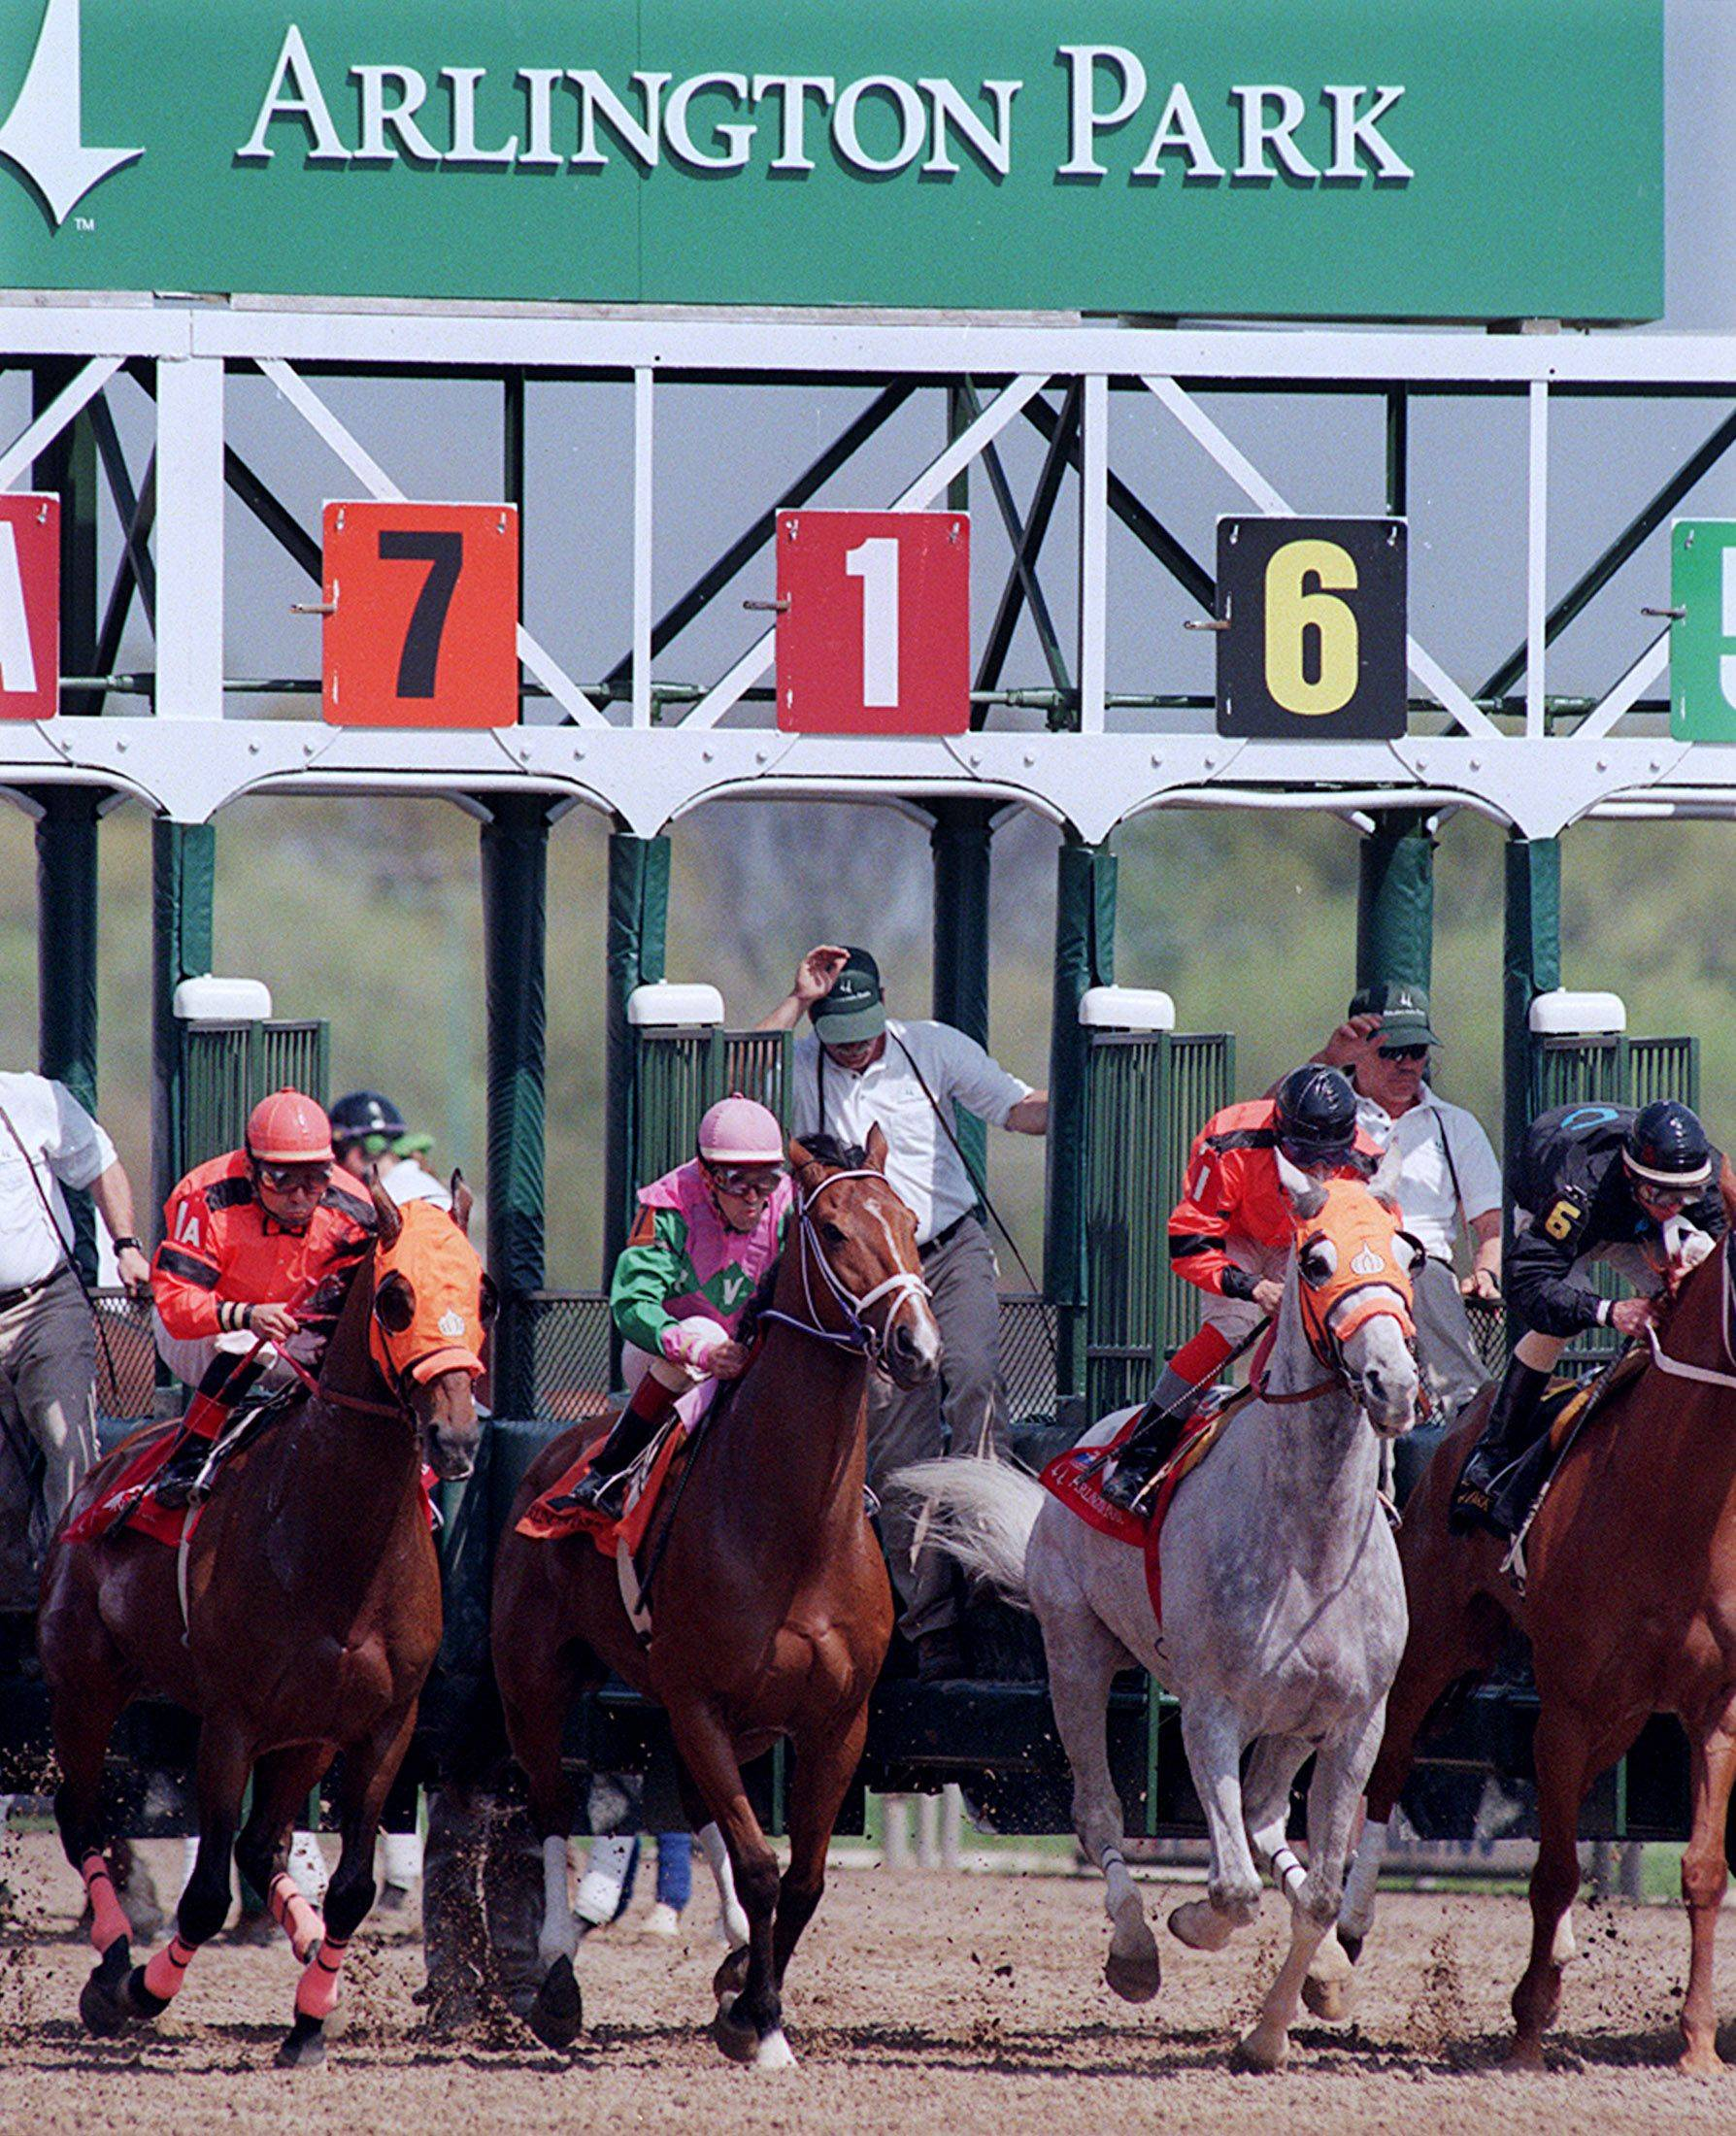 Arlington Park among state's unpaid bills